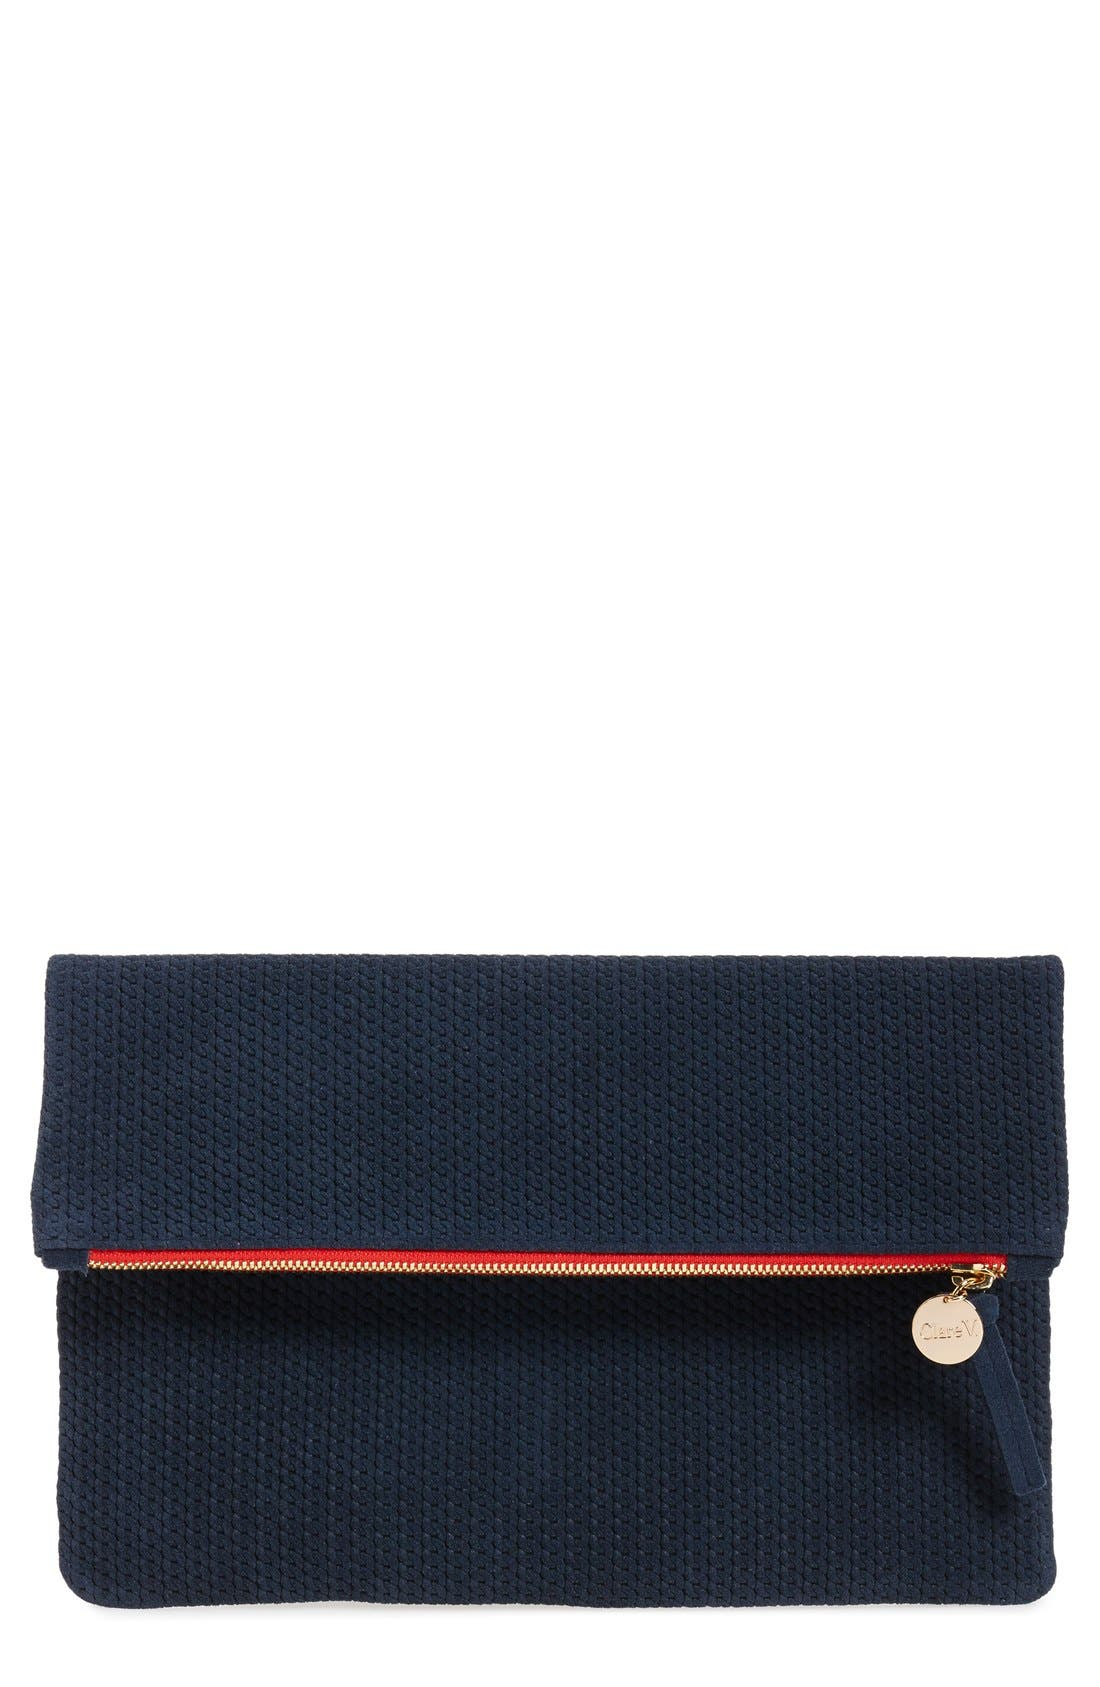 Main Image - Clare V. 'Marine Rope' Woven Suede Foldover Clutch